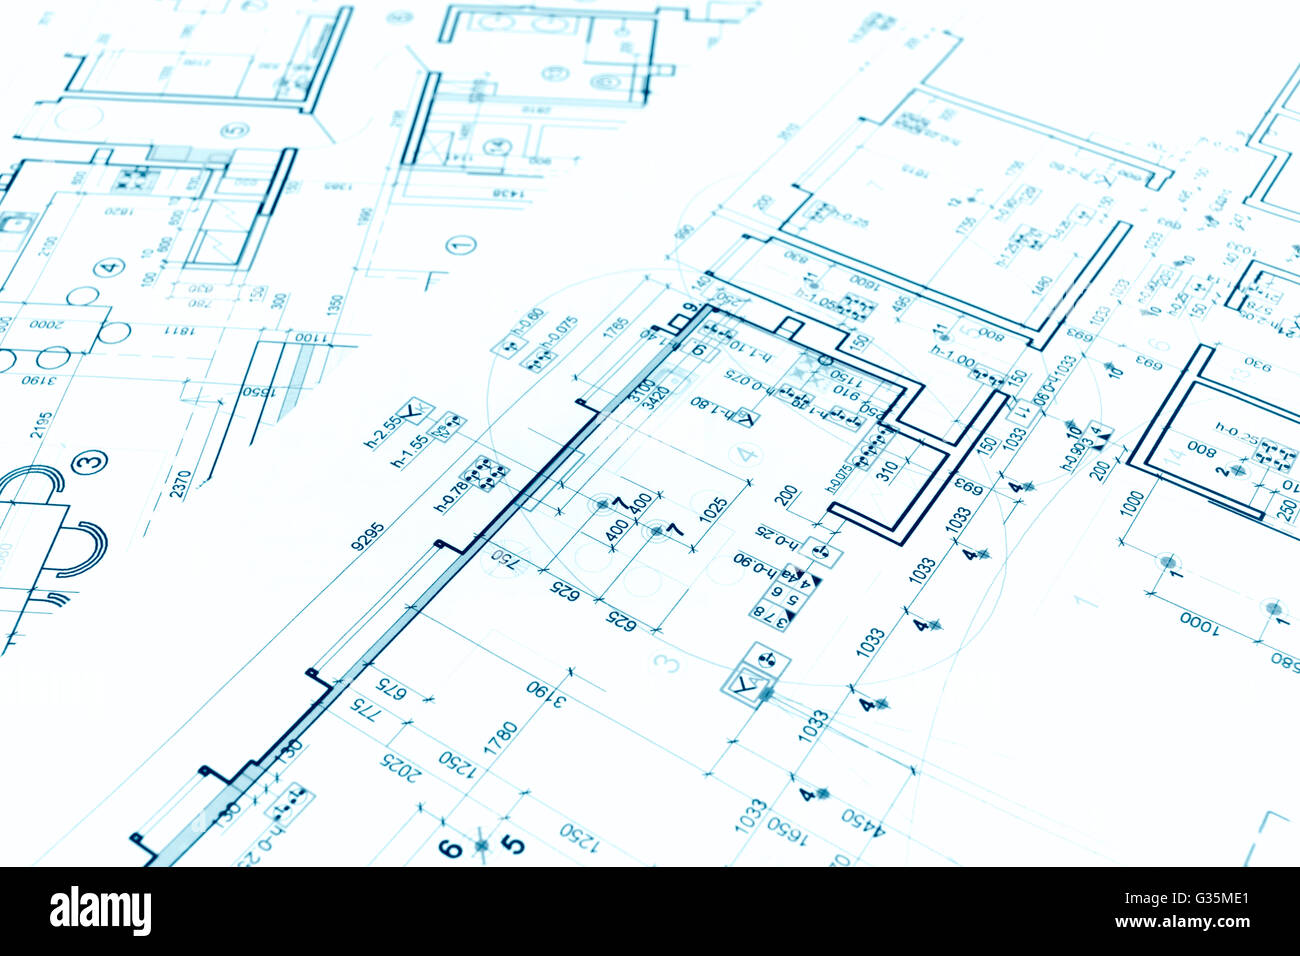 Architectural Project Floor Plan Blueprints Construction Plans